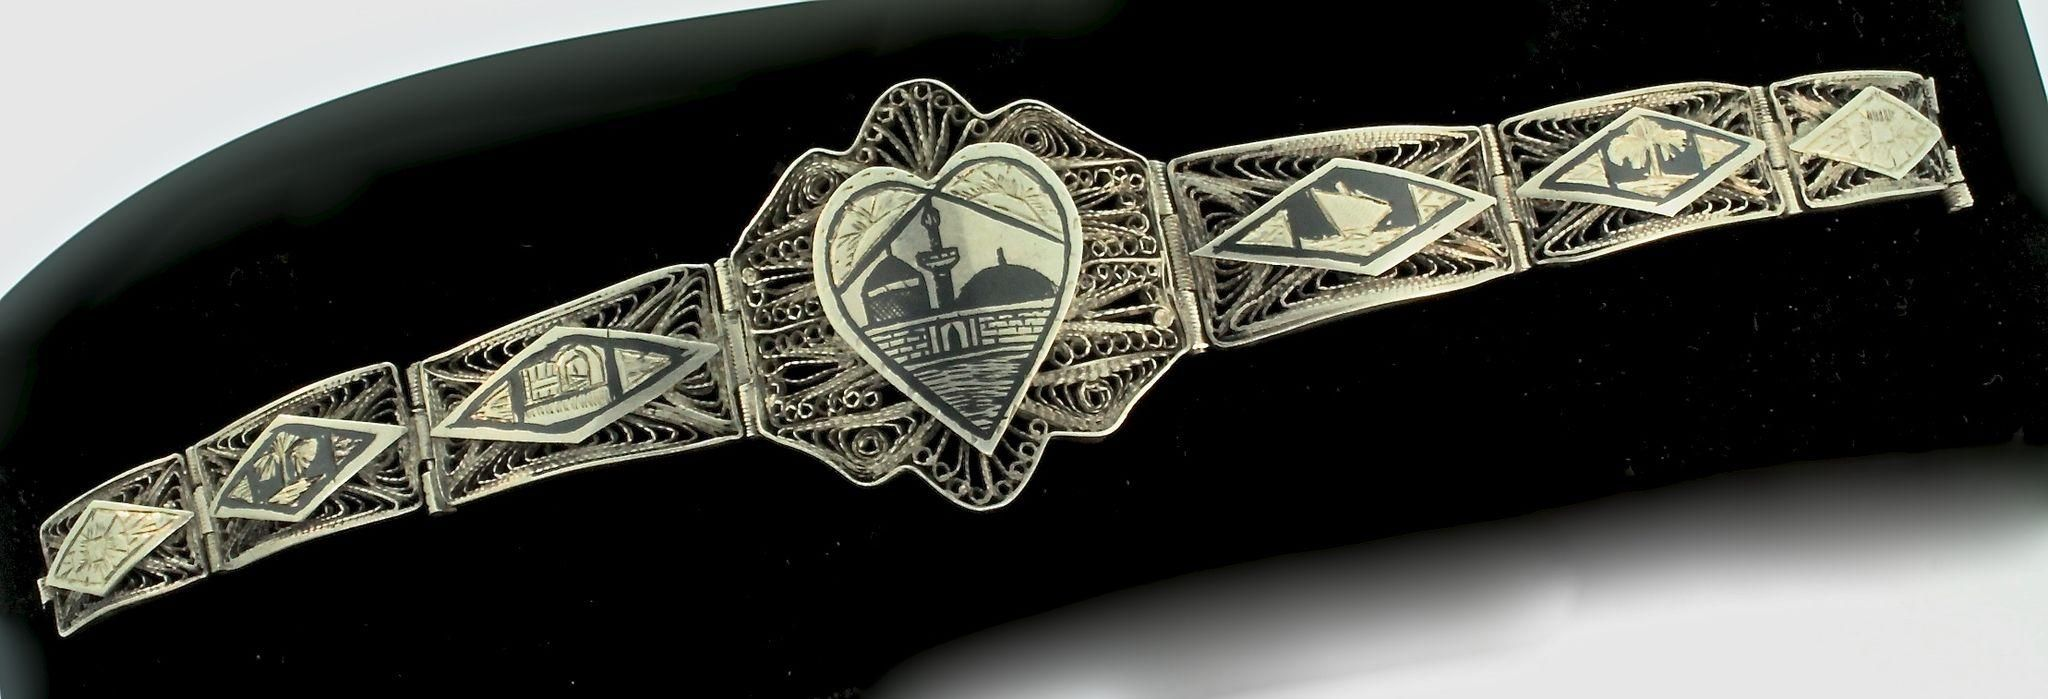 Assassins creed review even michael fassbender cant make this junk leap off the screen telegraph co uk - Slave Bracelet Ring Attached Silver Filigree Heart Amethyst Crystals Vintage 1940s Sterling Silver Filigree Enamel